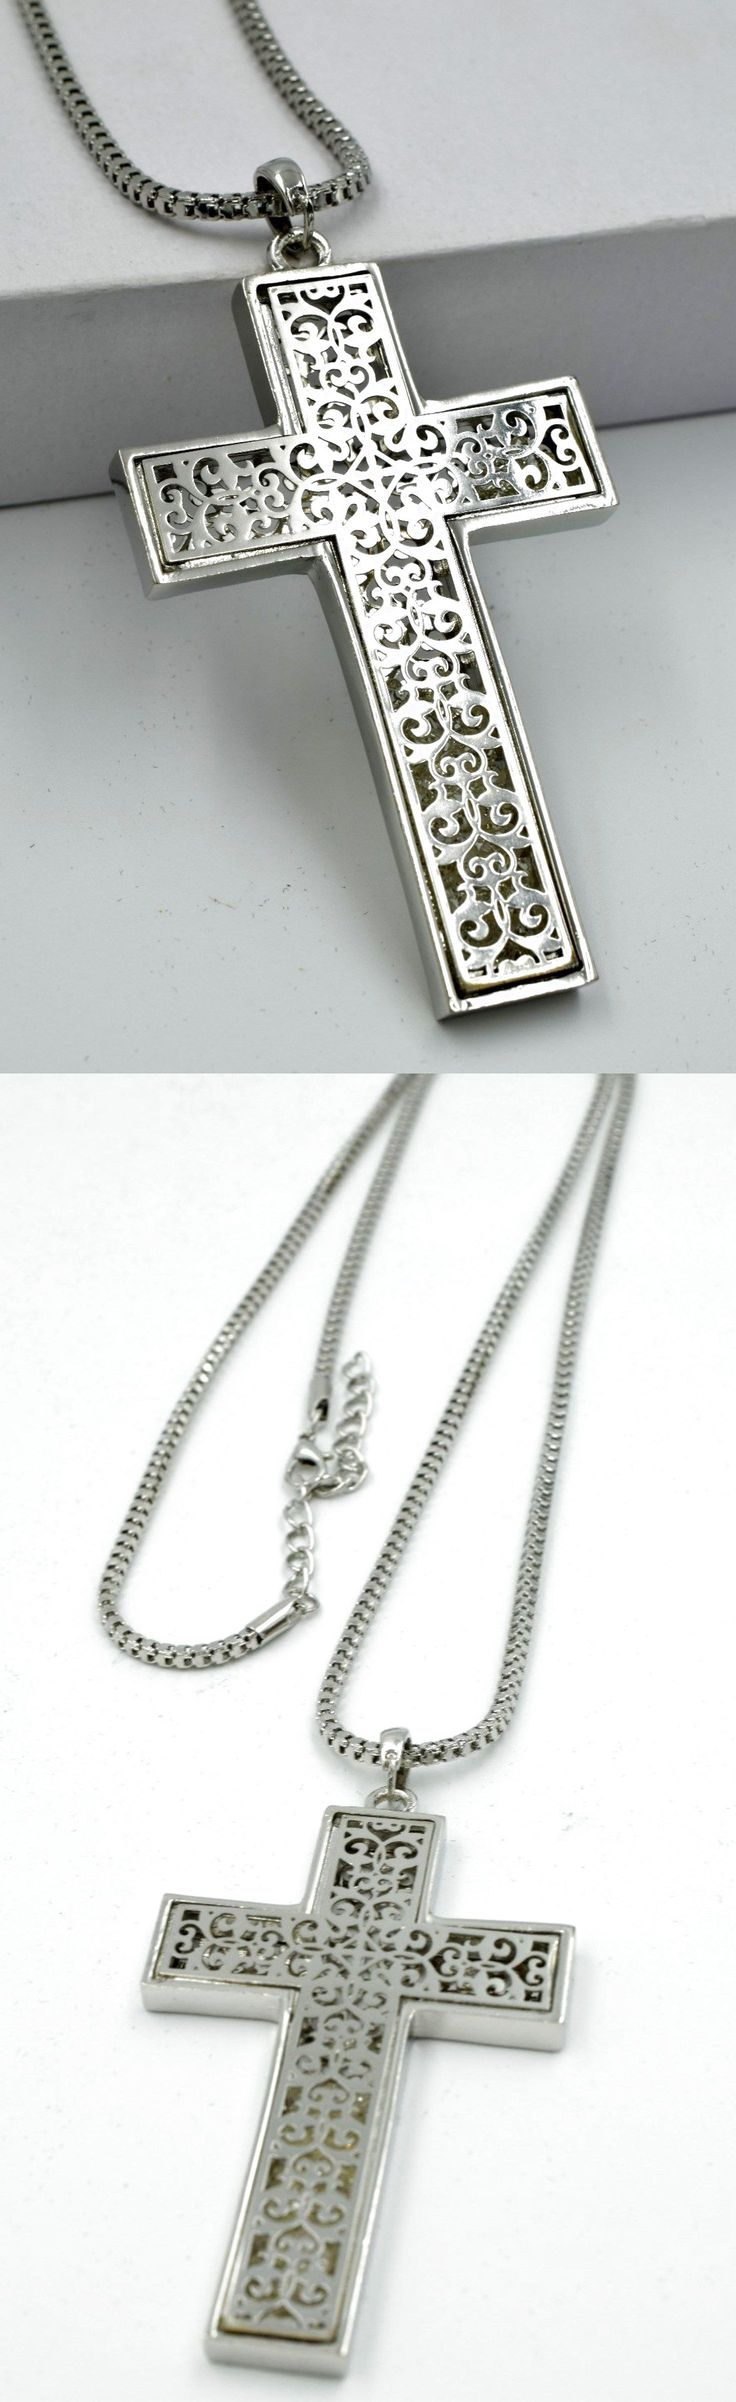 New Men Fashion Big Silver Cross Filigree Pendant Charm Long Chain Necklace ND27 $10.99